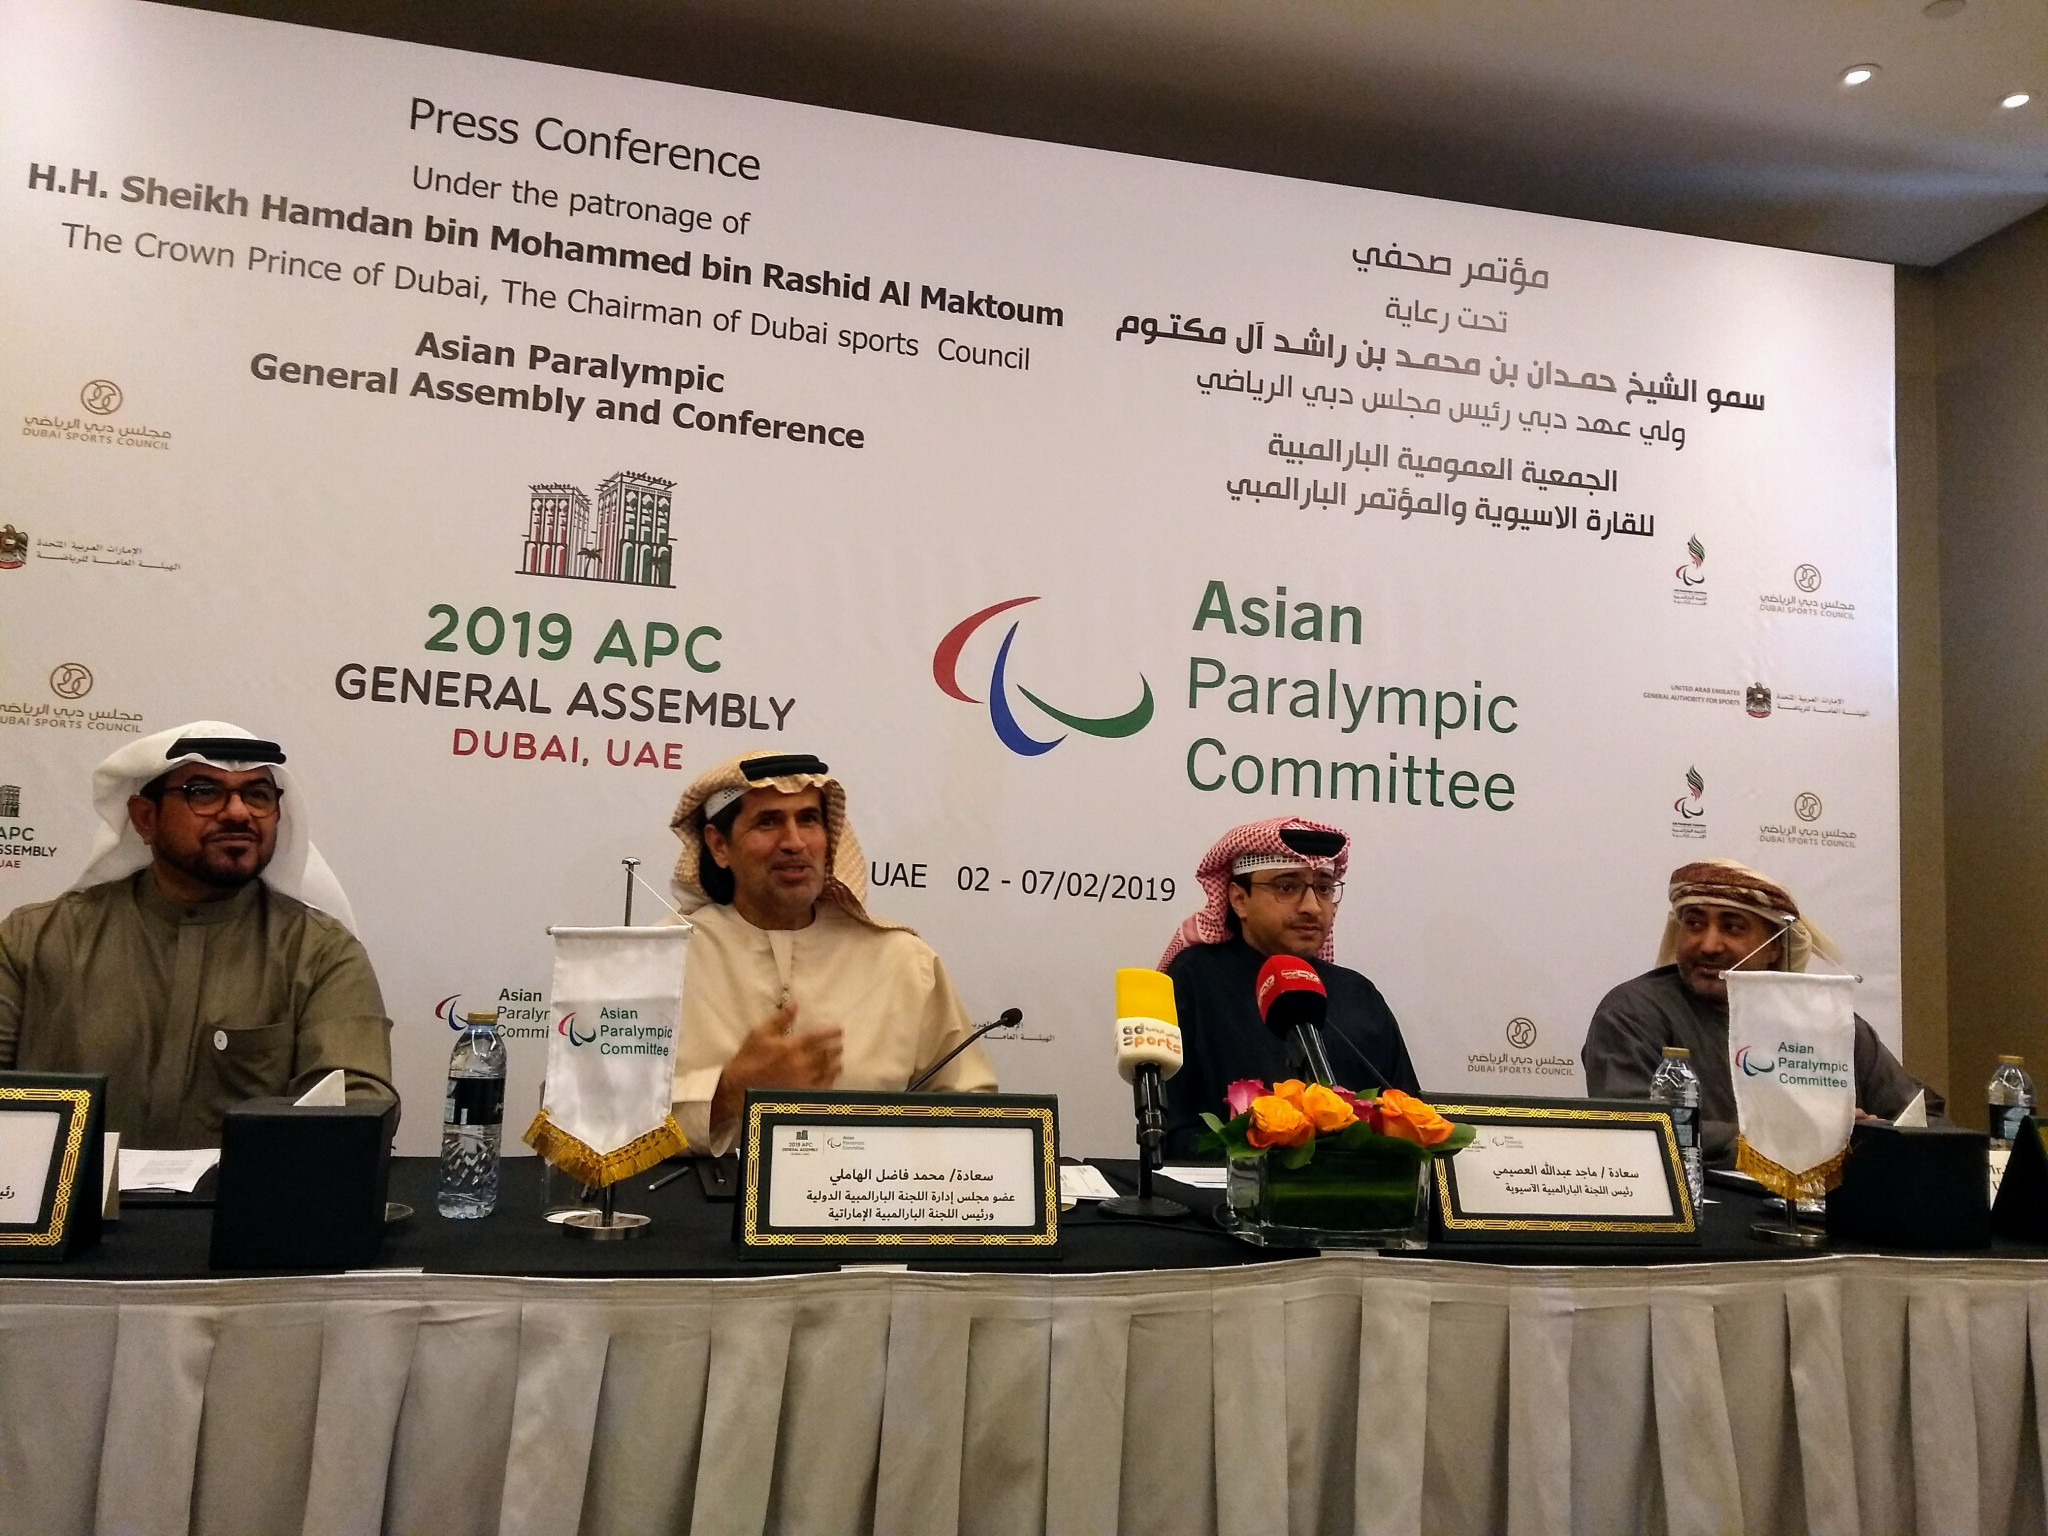 Asian Paralympic Committee ready to host General Assembly and Conference as schedule is outlined